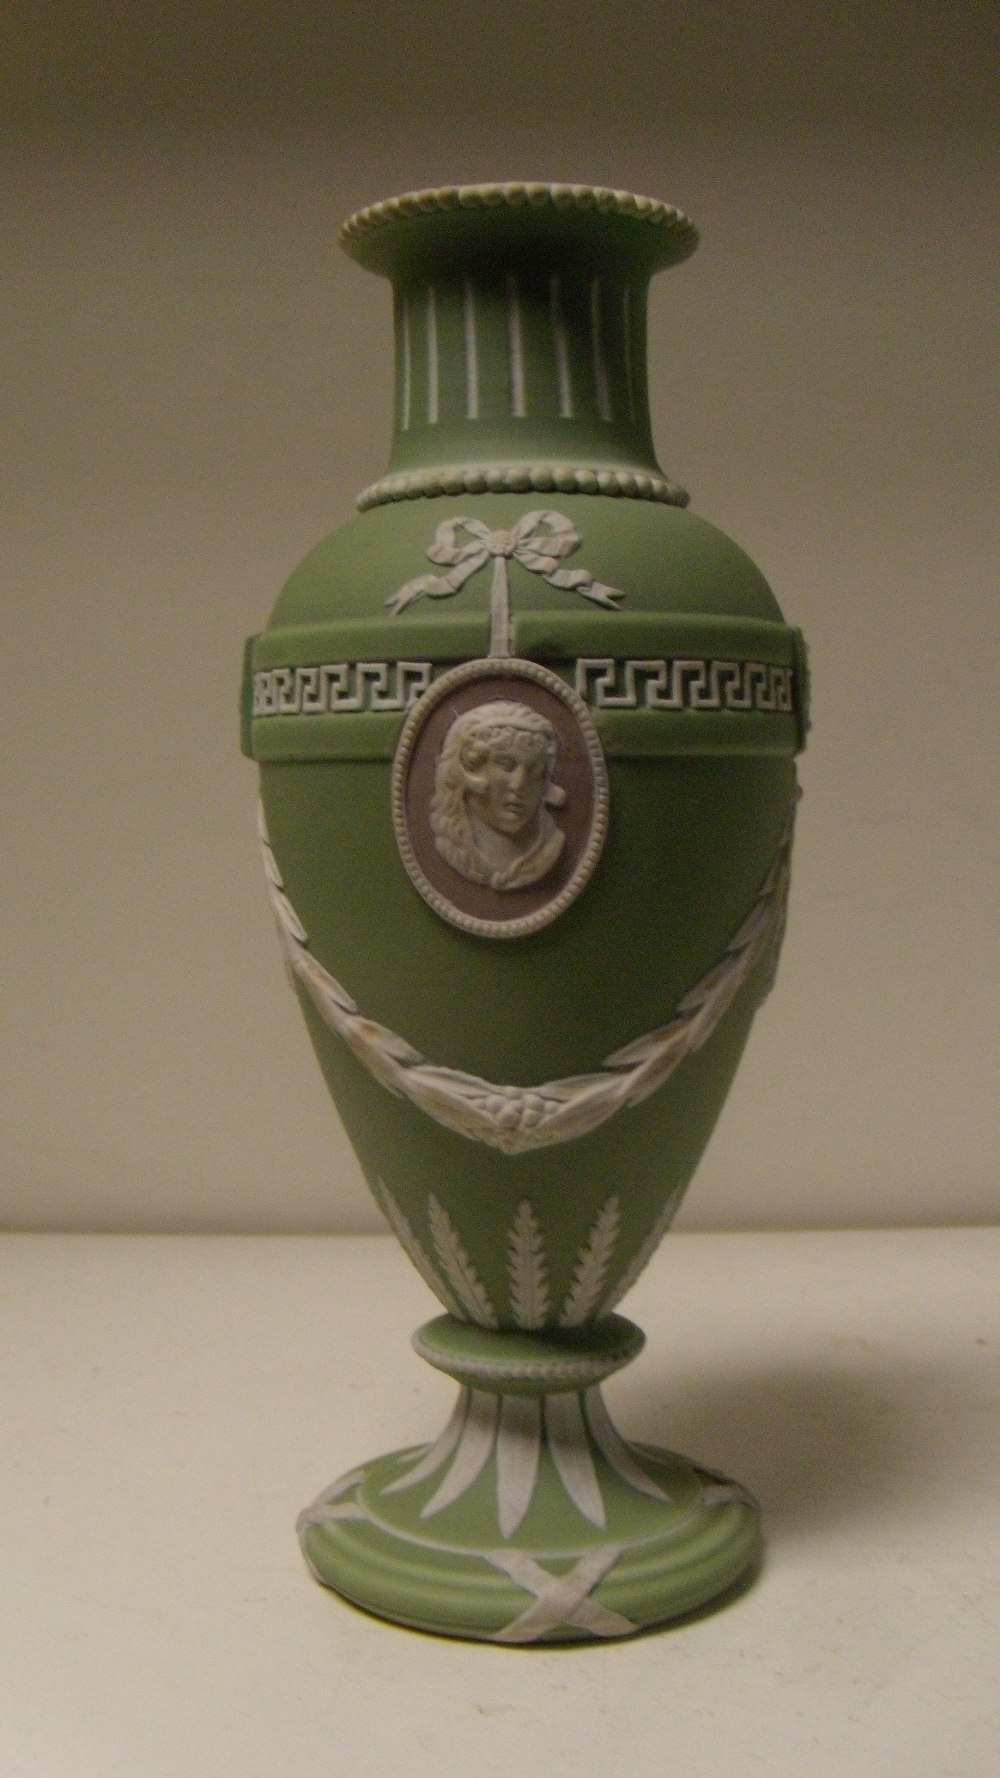 Lot 2 - A Wedgwood three colour jasper vase, the green ovoid body with two classical profiles in white on